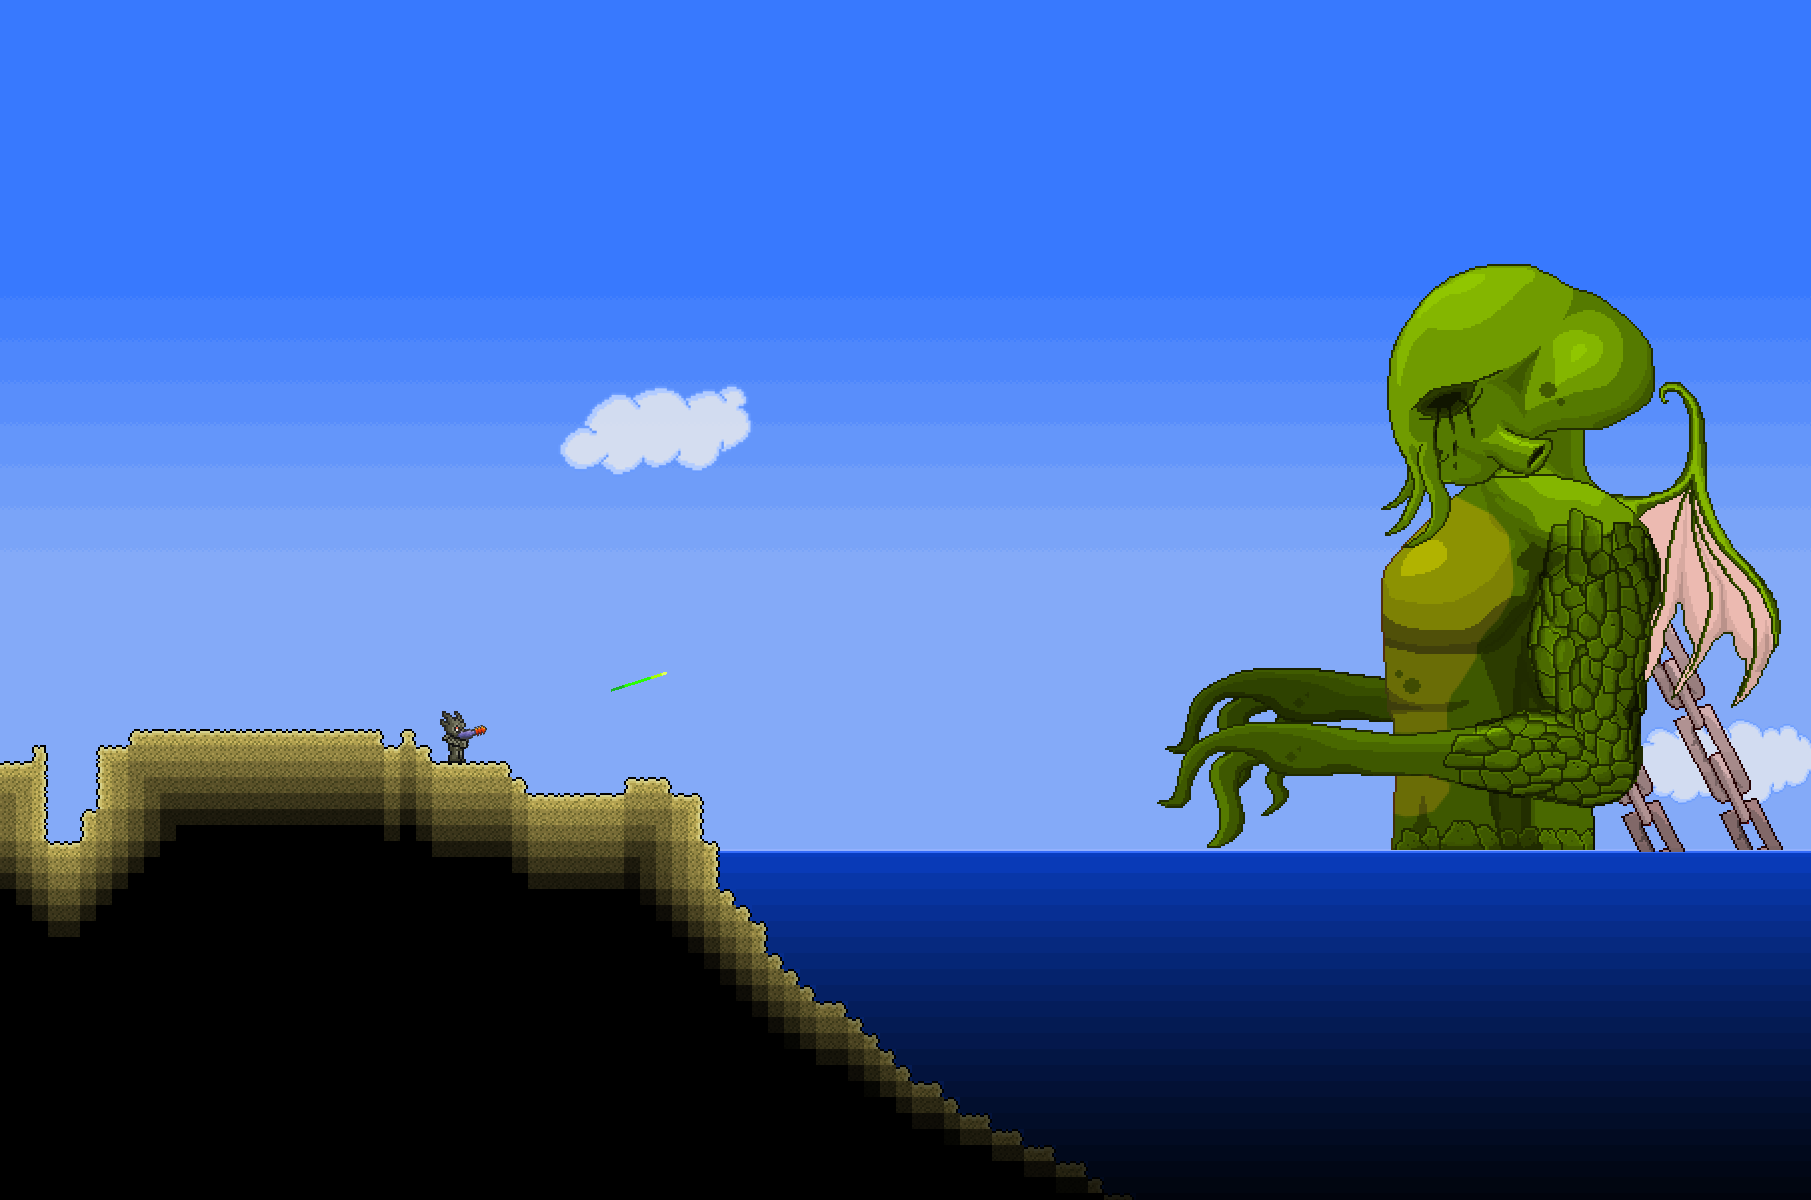 Cthulhu The Official Terraria Wiki Select from a wide range of models, decals, meshes, plugins, or audio that help bring your imagination into reality. cthulhu the official terraria wiki